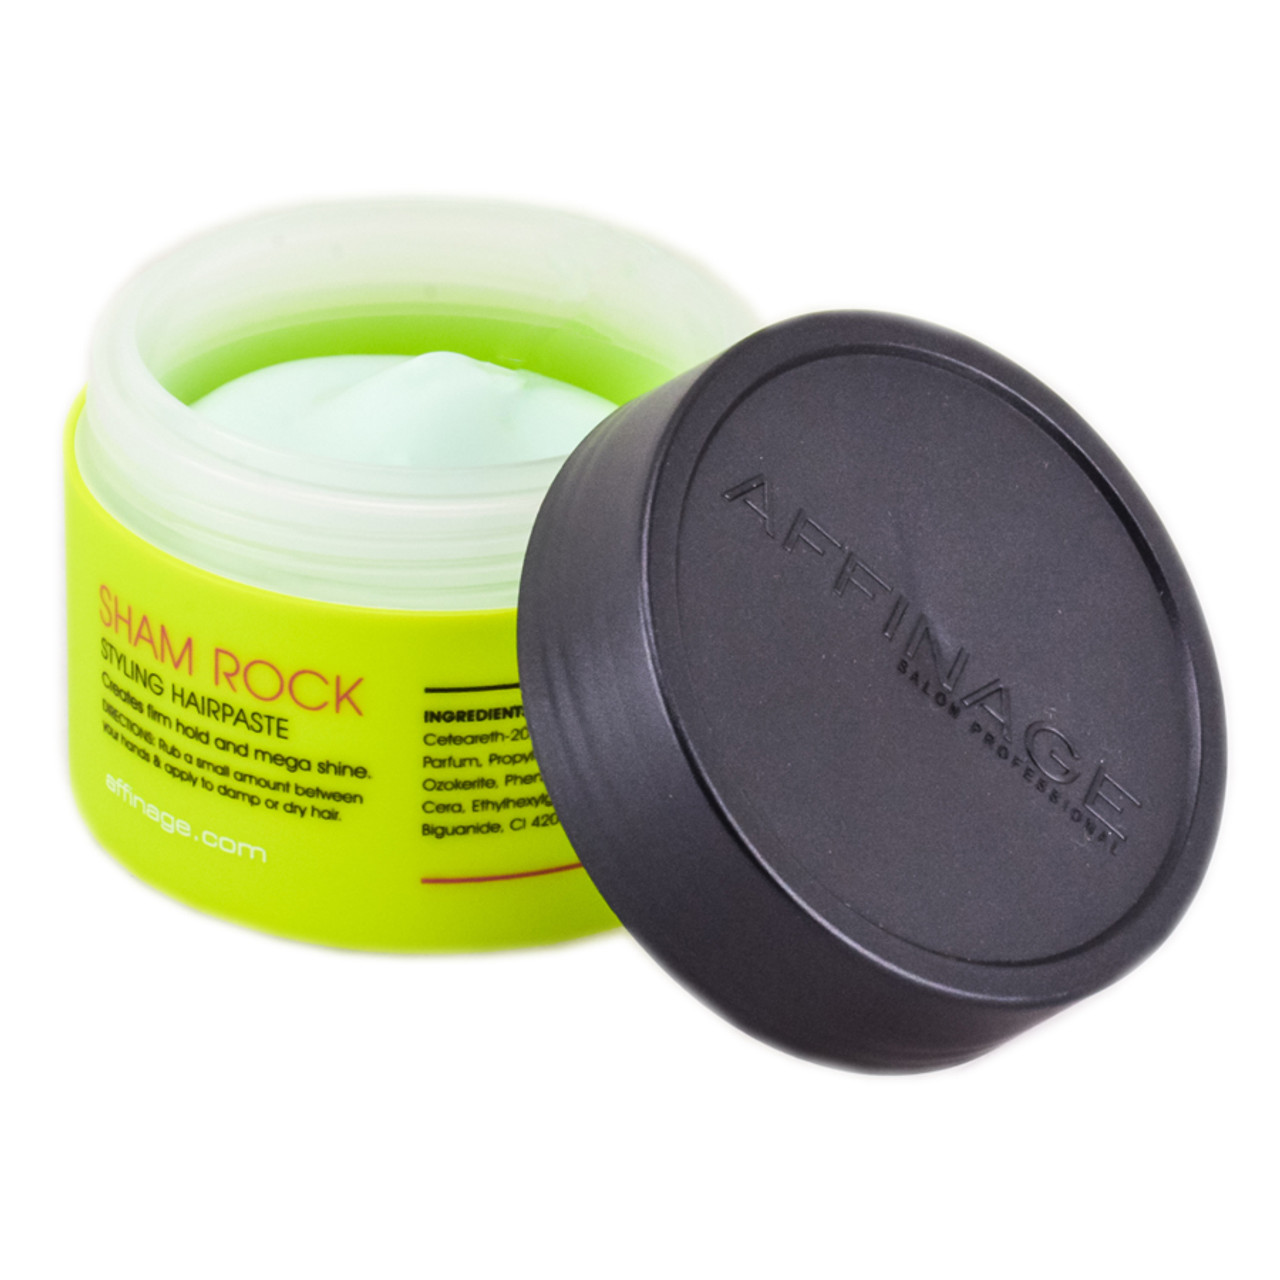 best hair styling paste affinage sham rock styling hair paste sleekshop 1179 | affinage sham rock styling hair paste 14 11197.1472573837